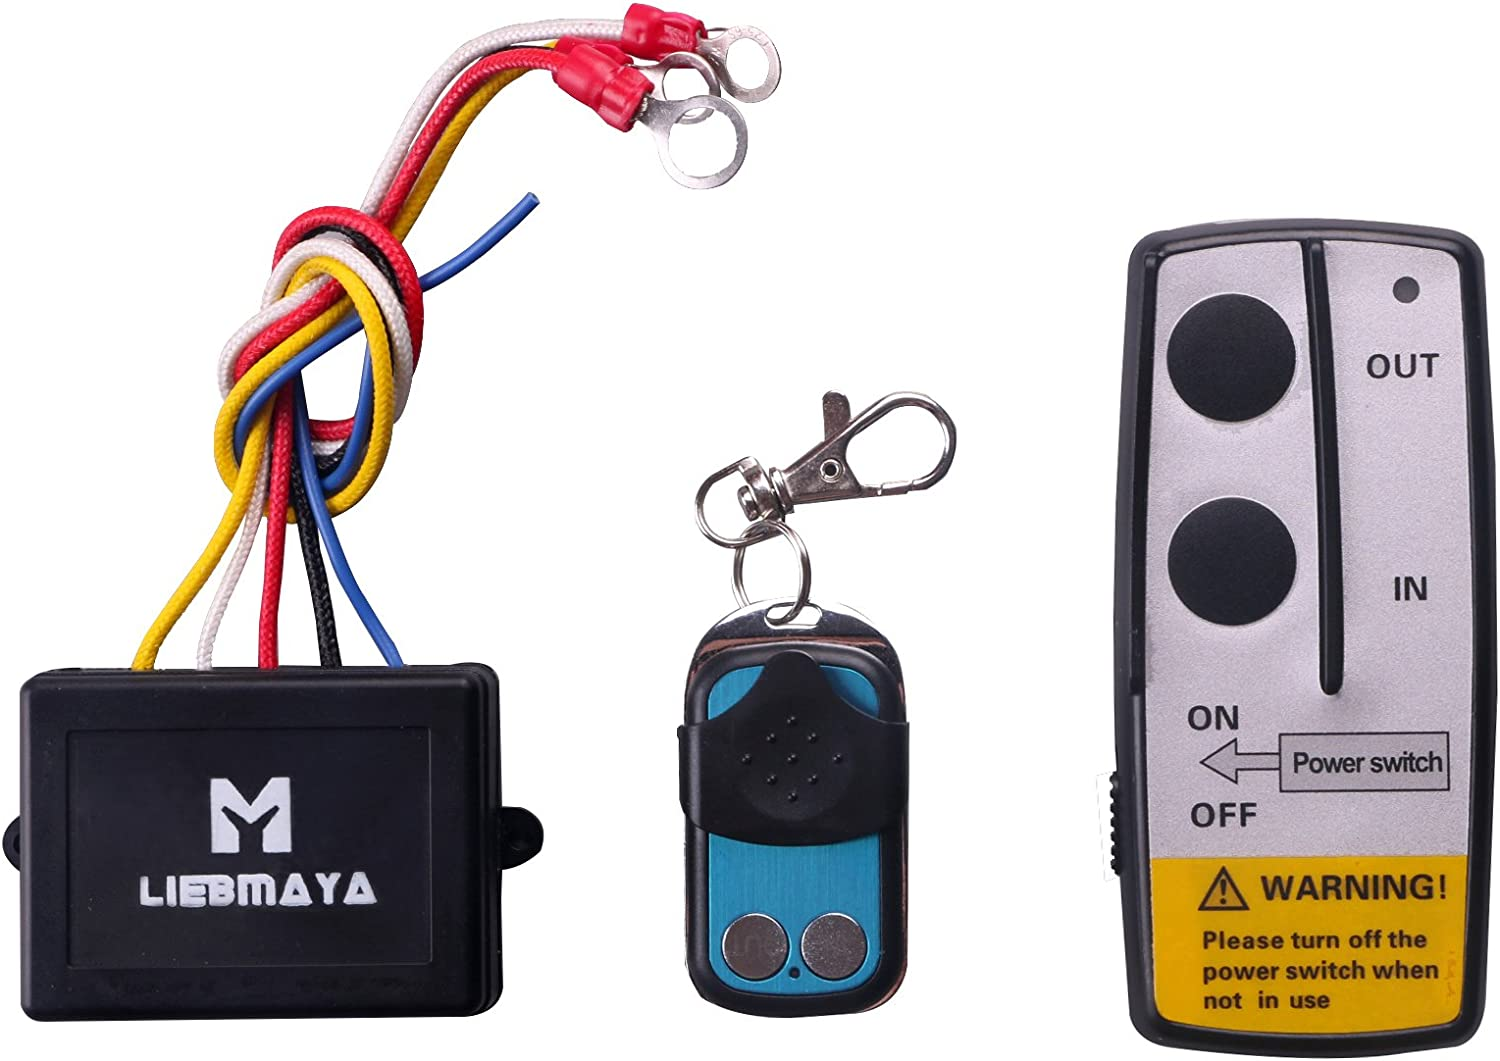 [SCHEMATICS_48DE]  Amazon.com: LIEBMAYA Wireless Winch Remote Control Kit for Truck Jeep ATV  SUV 12V Switch Handset: Home Improvement | Den Winch Wiring Diagram |  | Amazon.com